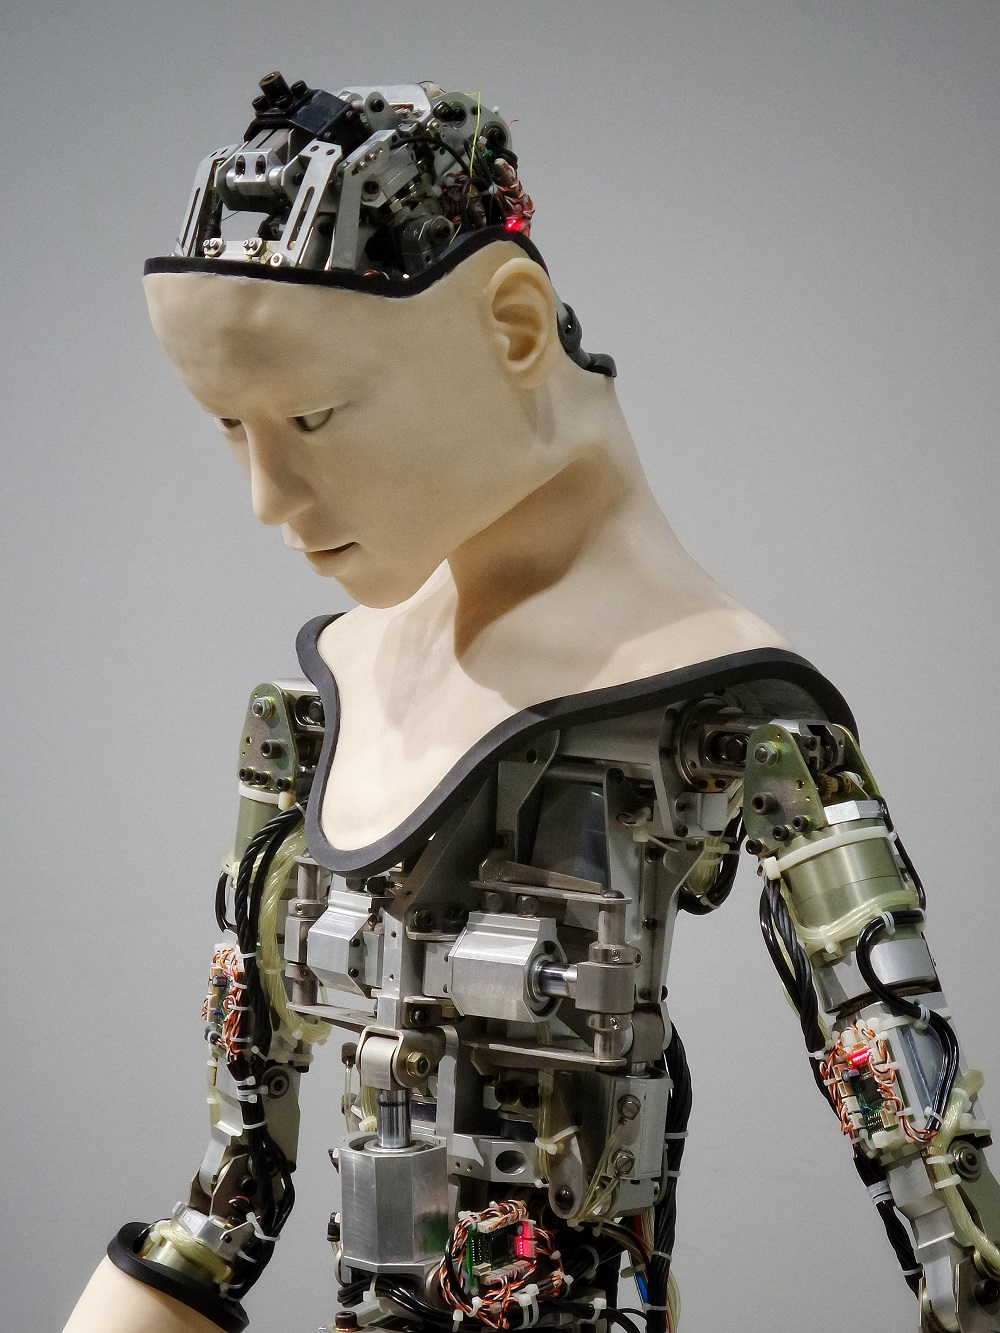 The Real World AI: Technology Elon Musk is Creating with Tesla